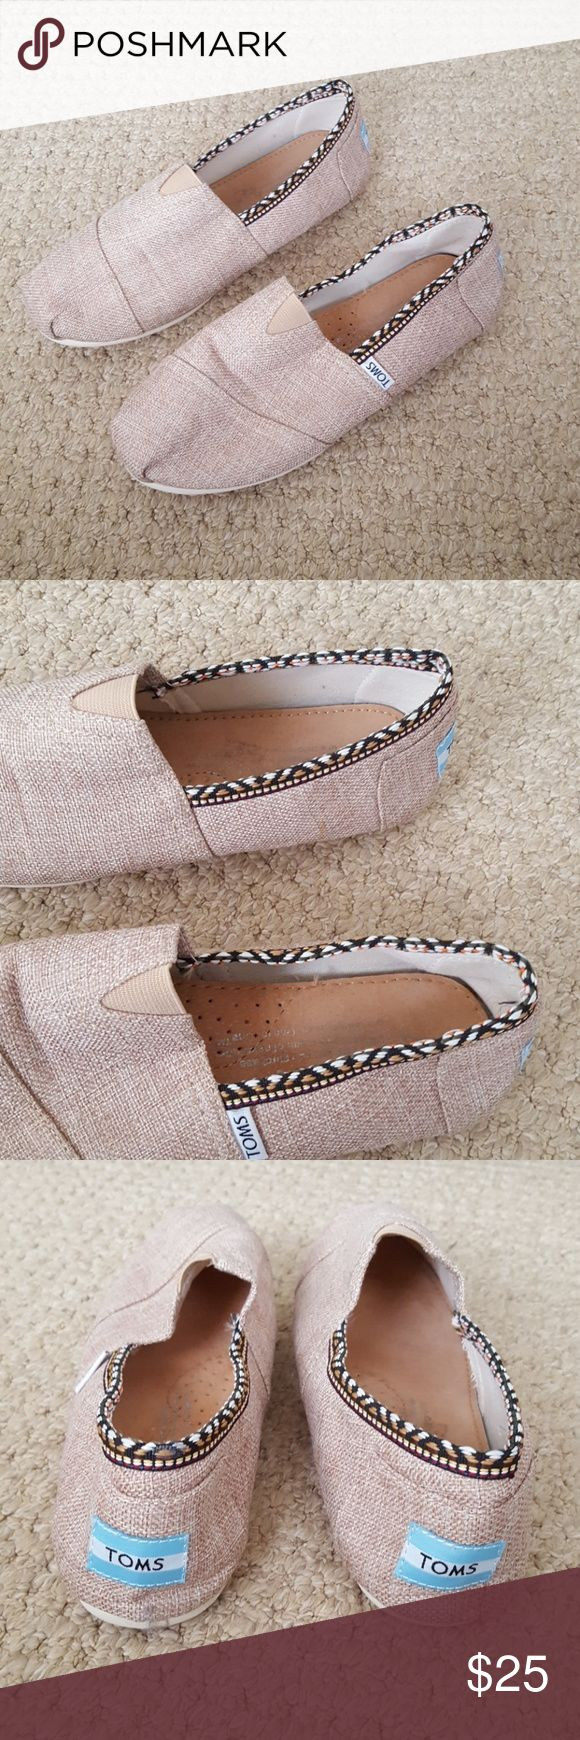 NWOT Burlap Toms Shoes Brand new condition! Toms Shoes Flats & Loafers